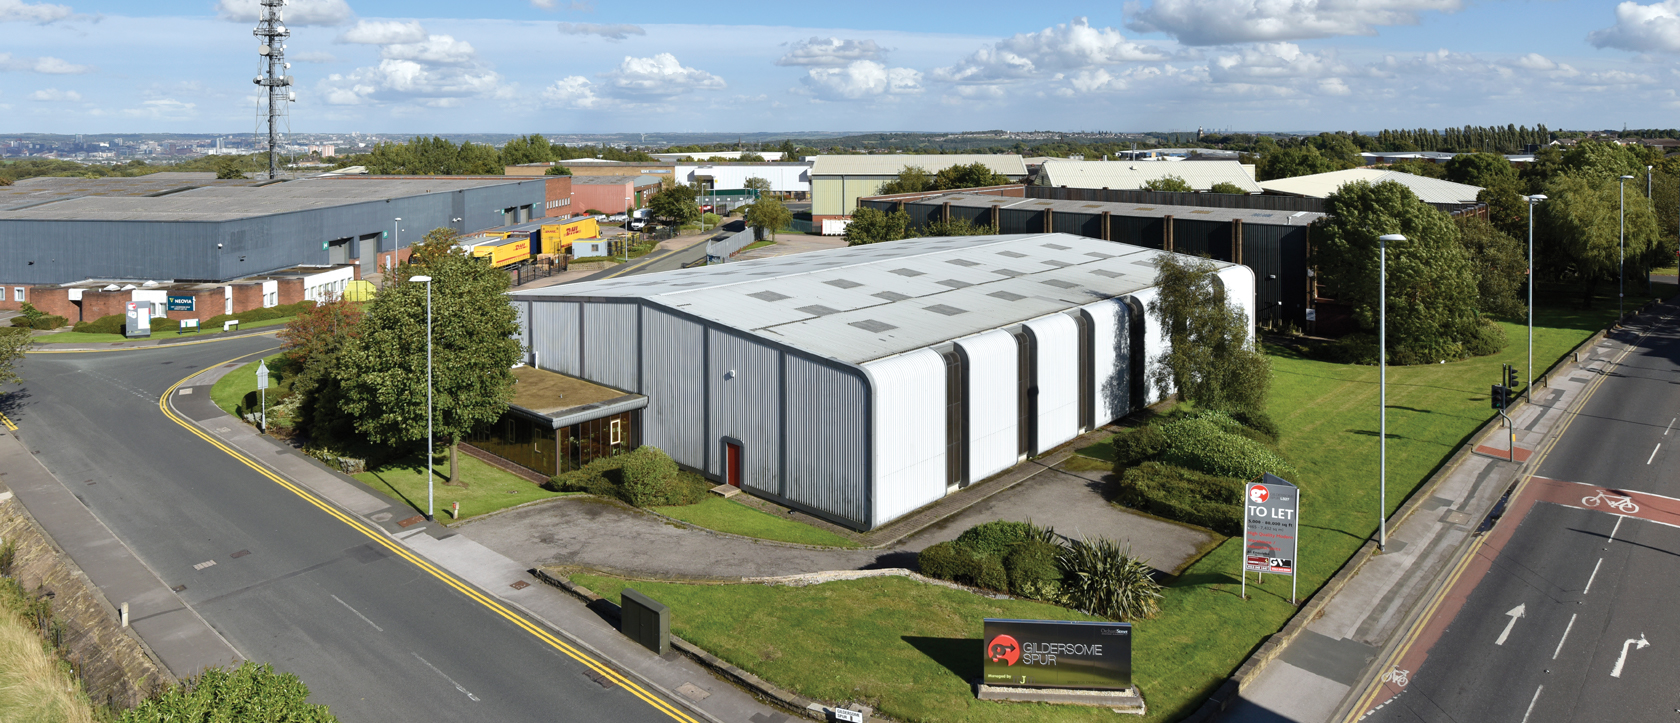 gildersome_spur_warehouses